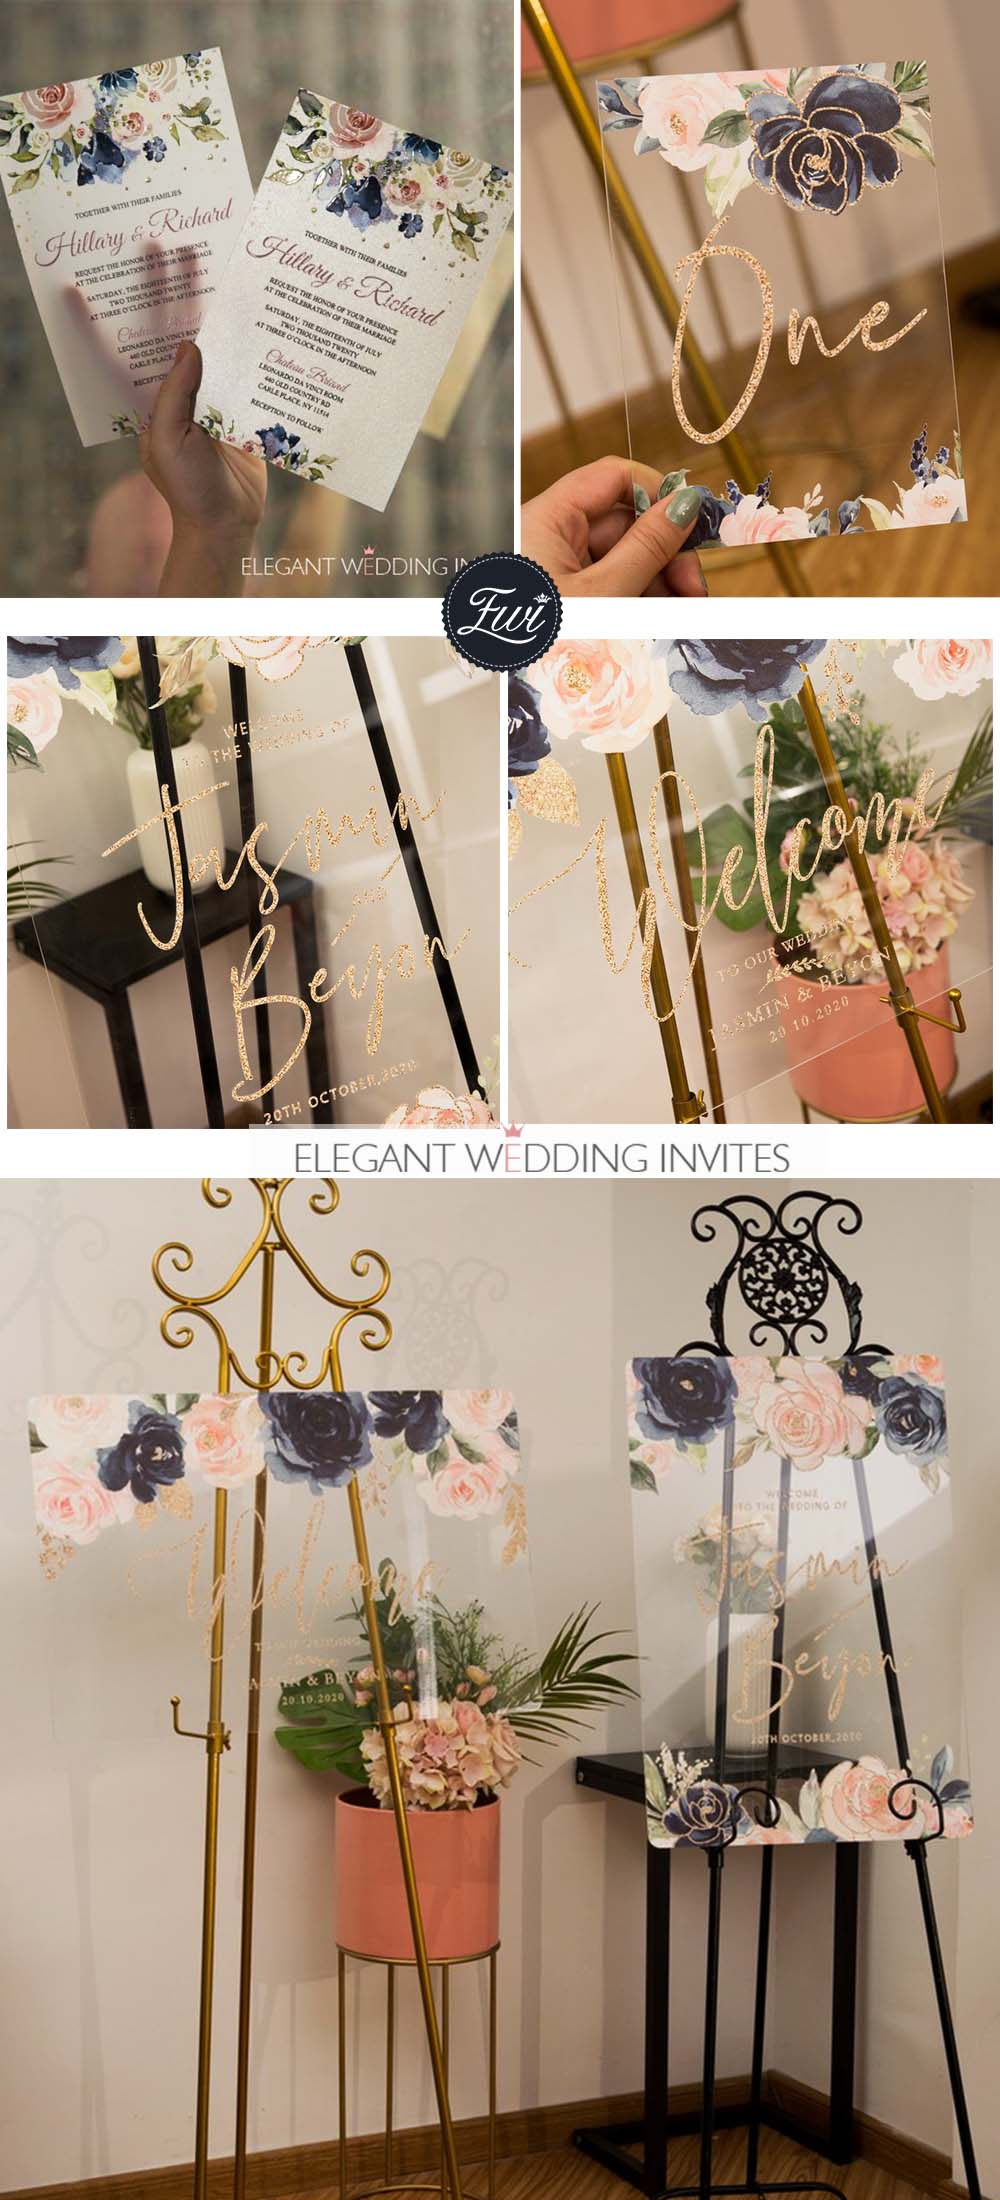 blush flowers and navy touches wedding color ideas with acrylic signs and wedding invites